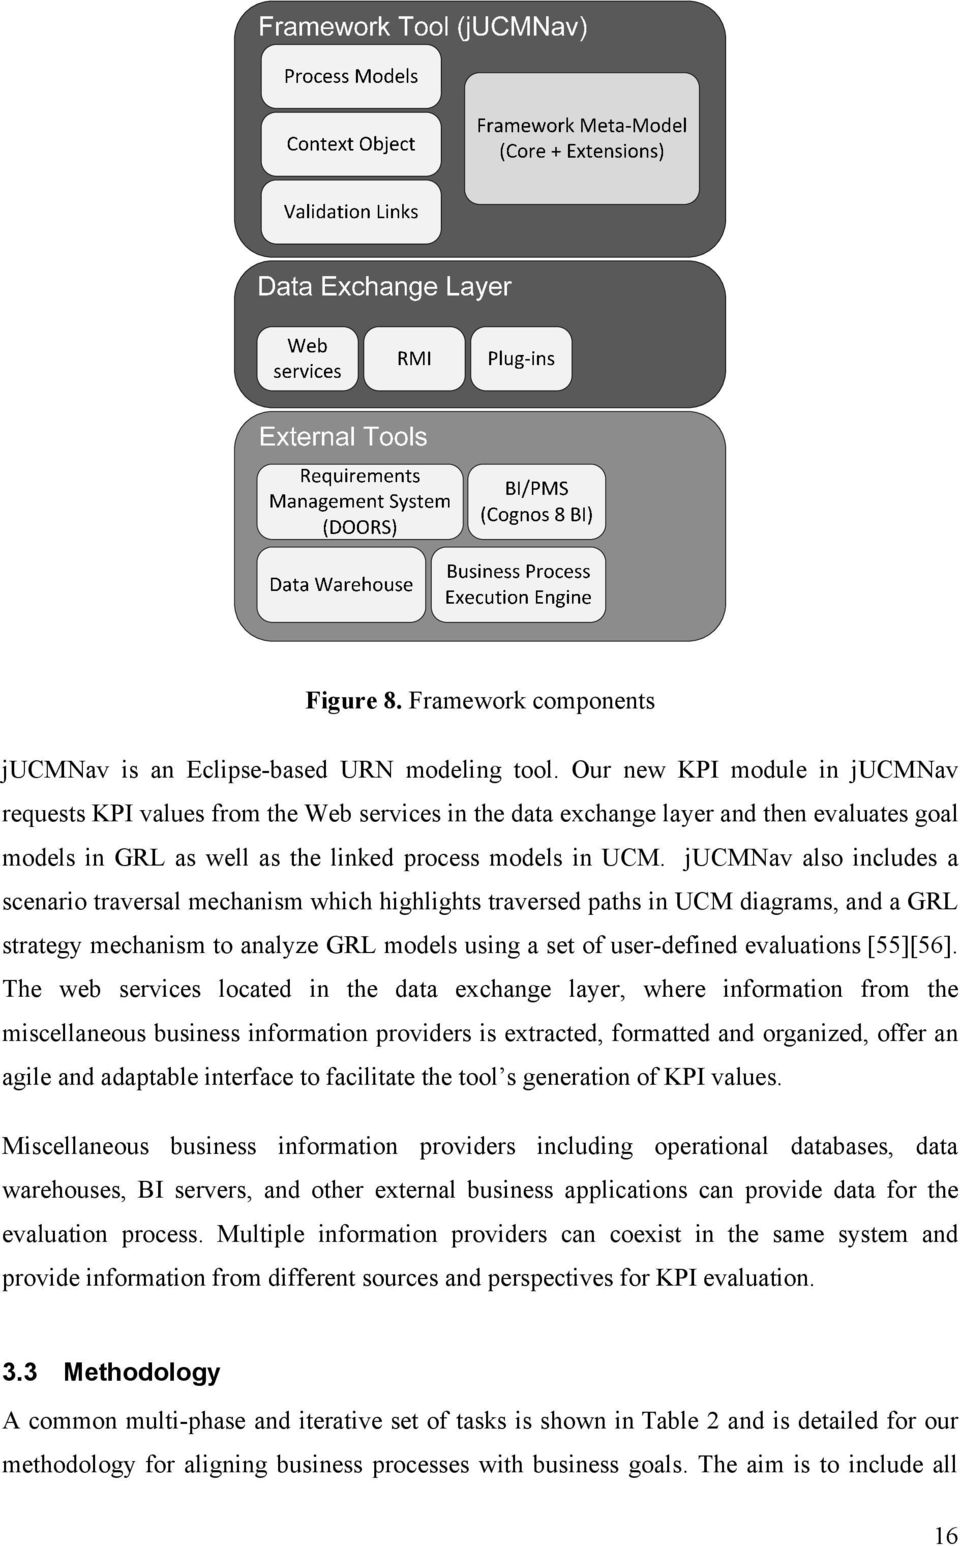 jucmnav also includes a scenario traversal mechanism which highlights traversed paths in UCM diagrams, and a GRL strategy mechanism to analyze GRL models using a set of user-defined evaluations